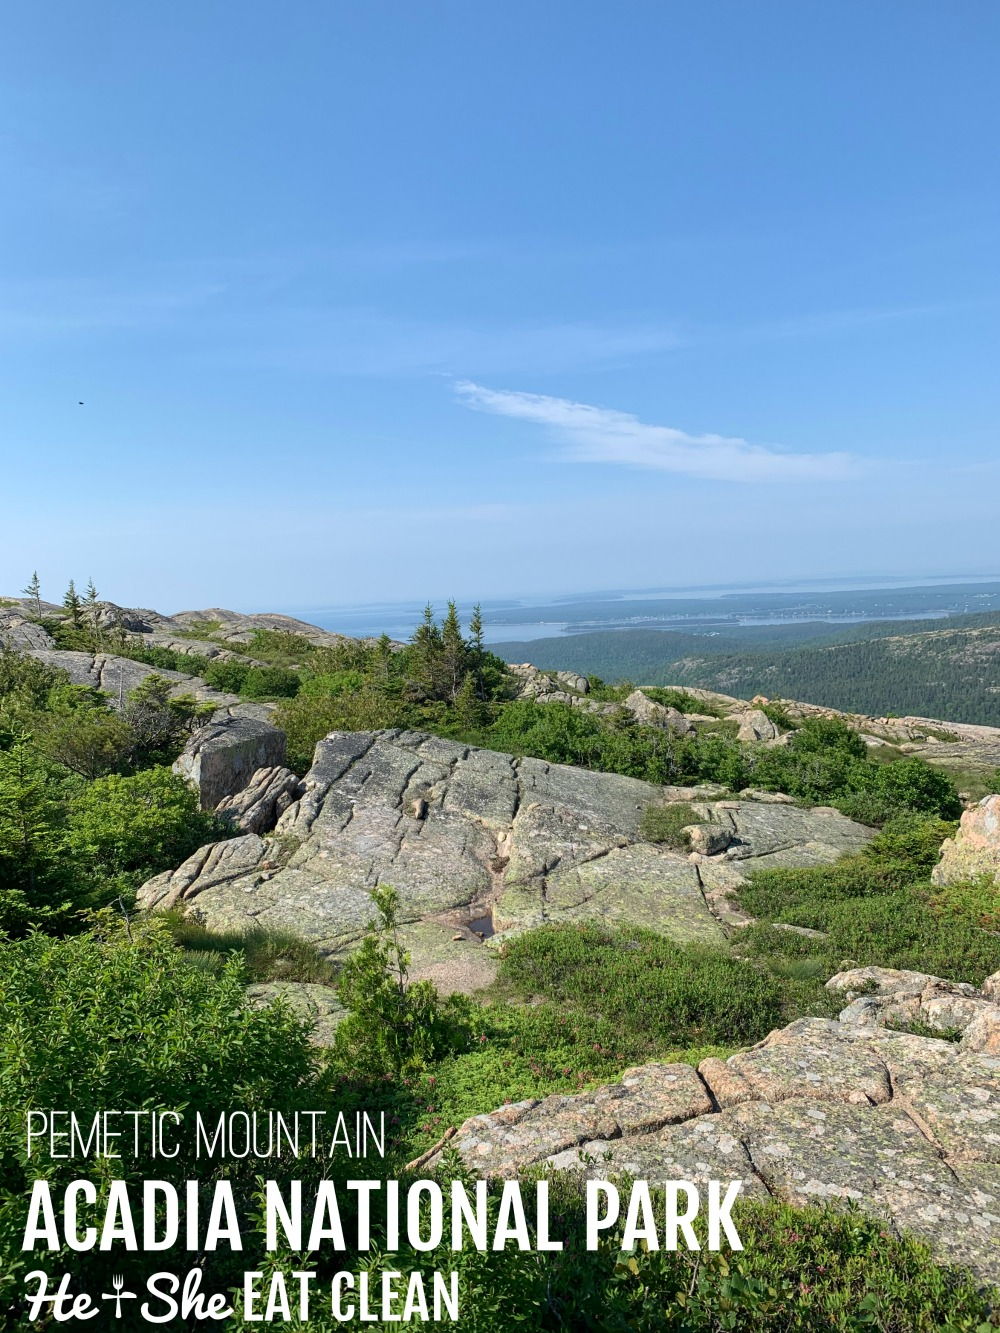 landscape photo of a rocky top mountain with the ocean in the distance in Acadia National Park